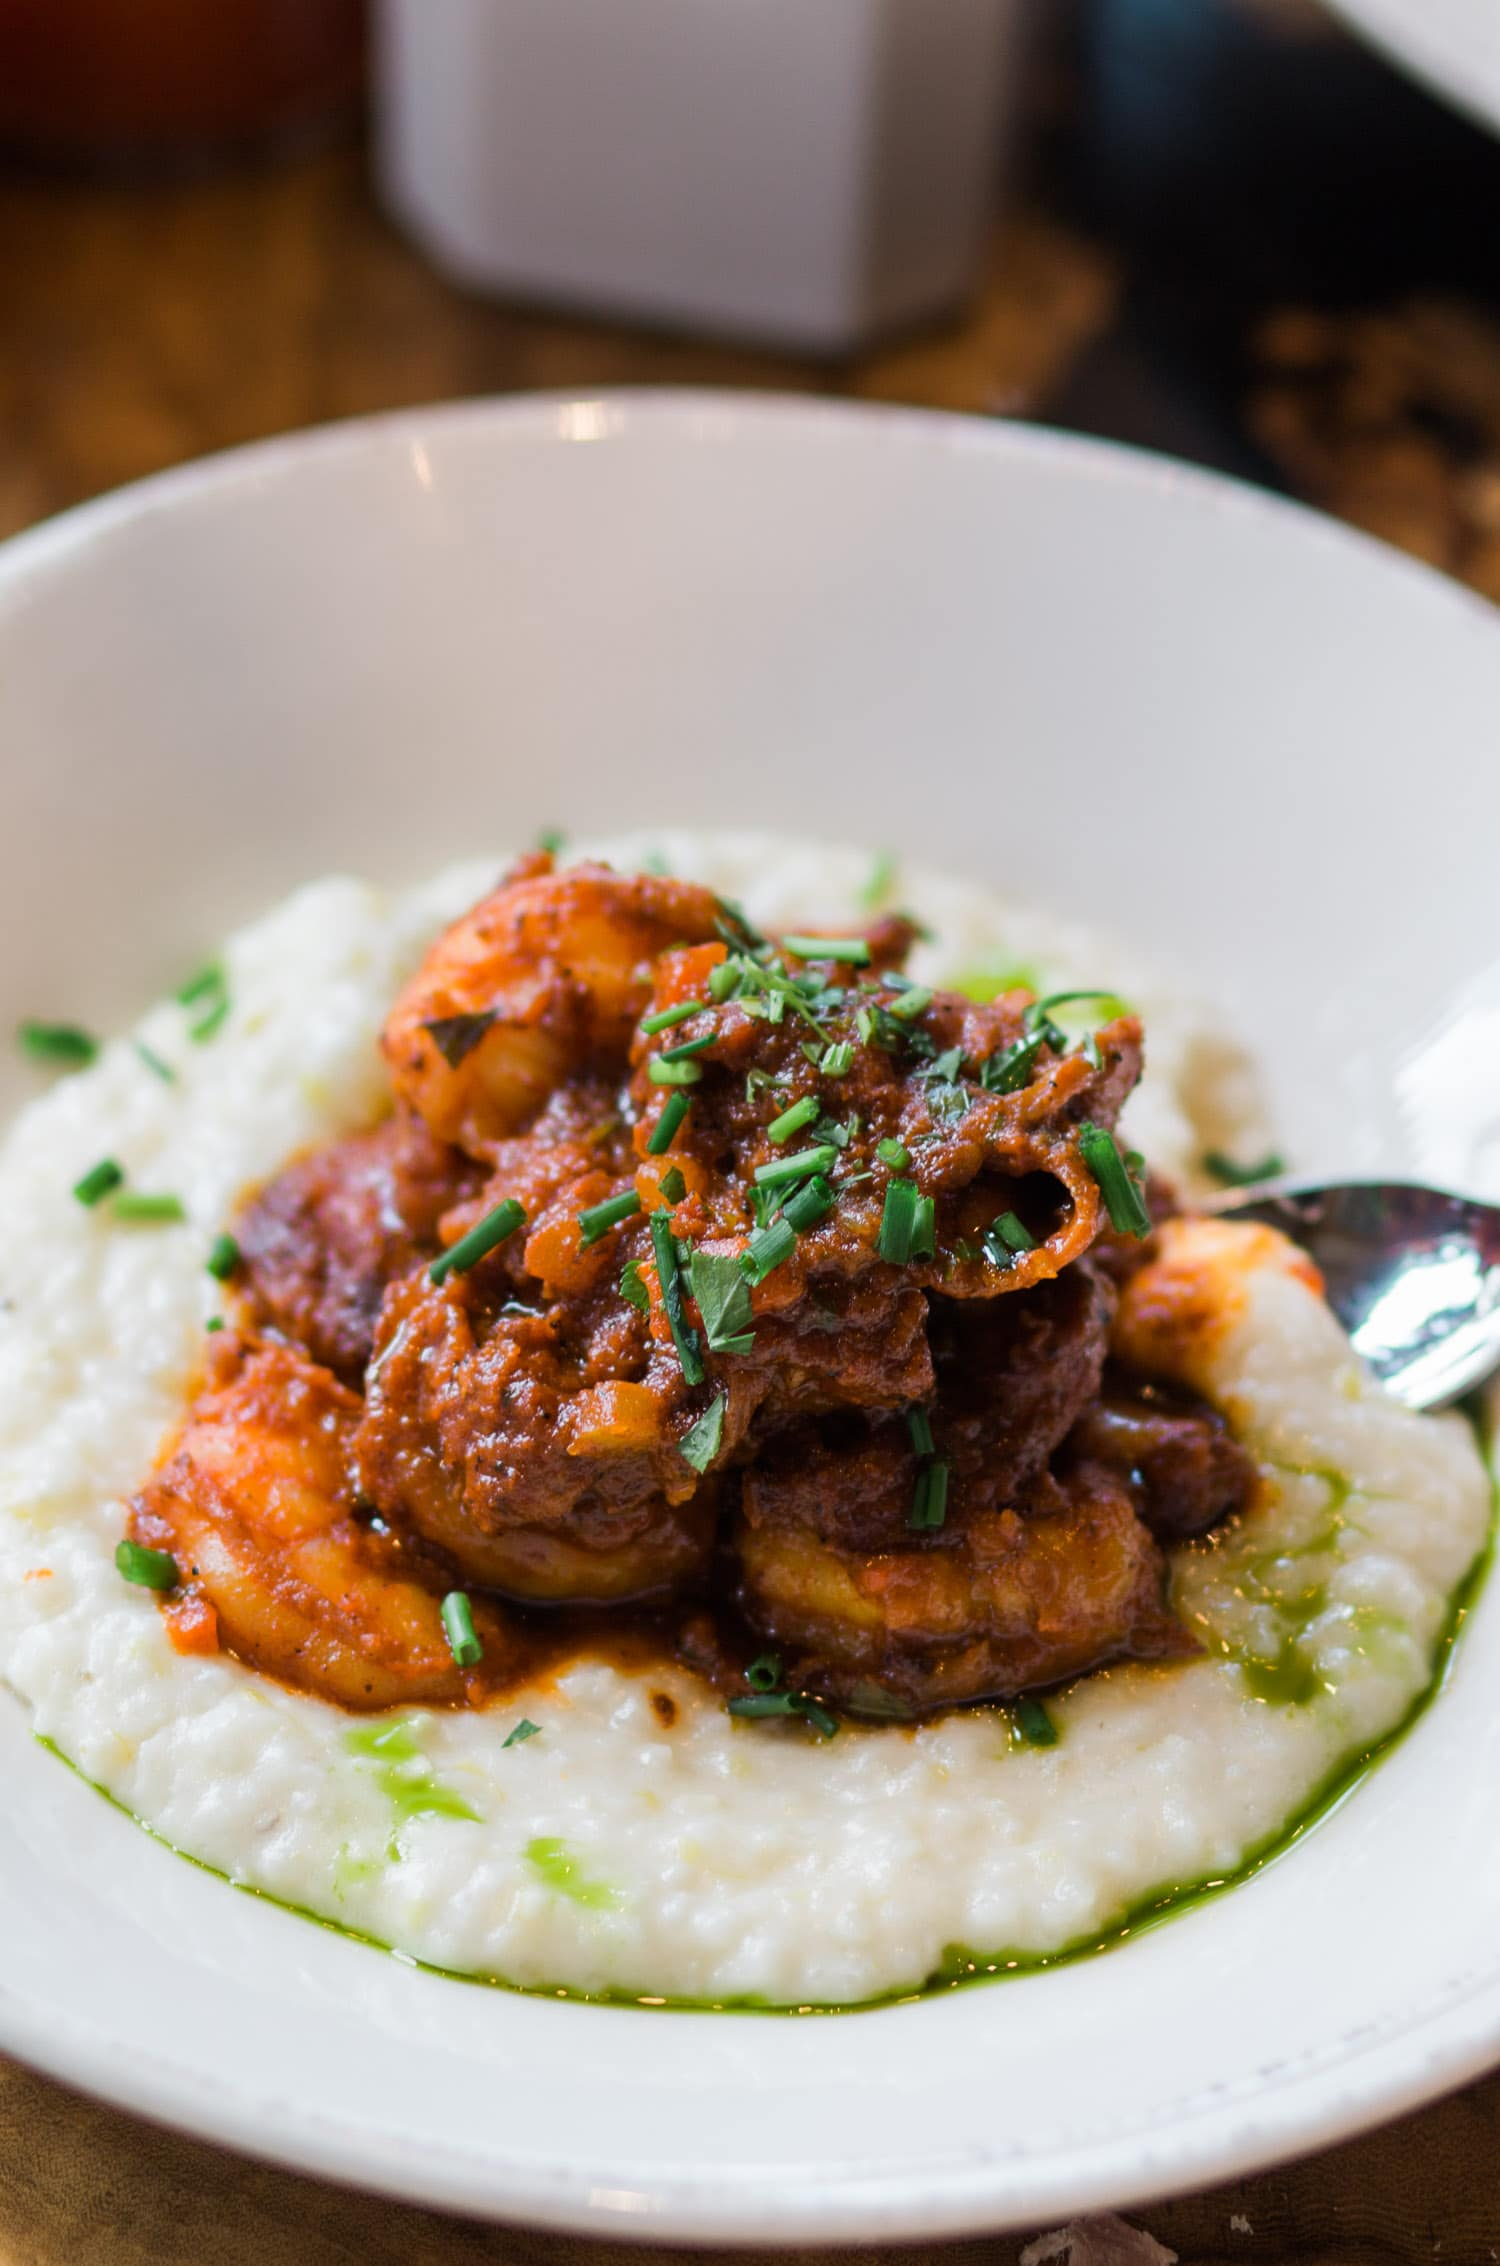 Shrimp and Grits at Homecomin' Restaurant in Disney Springs | Planning a trip to Orlando? I've rounded up the top 10 things to do in Orlando, Florida, that are guaranteed to make your trip a success. Whether you're moving to Orlando or just headed in on vacation, you will LOVE this list of fun activities in Orlando by Florida travel blogger Ashley Brooke Nicholas #CORTatHome sponsored by   @cortfurniture    affordable travel tips, orlando vacation tips, vacation tips, orlando eye, leu gardens, universal studios, islands of adventure, disney, disney springs